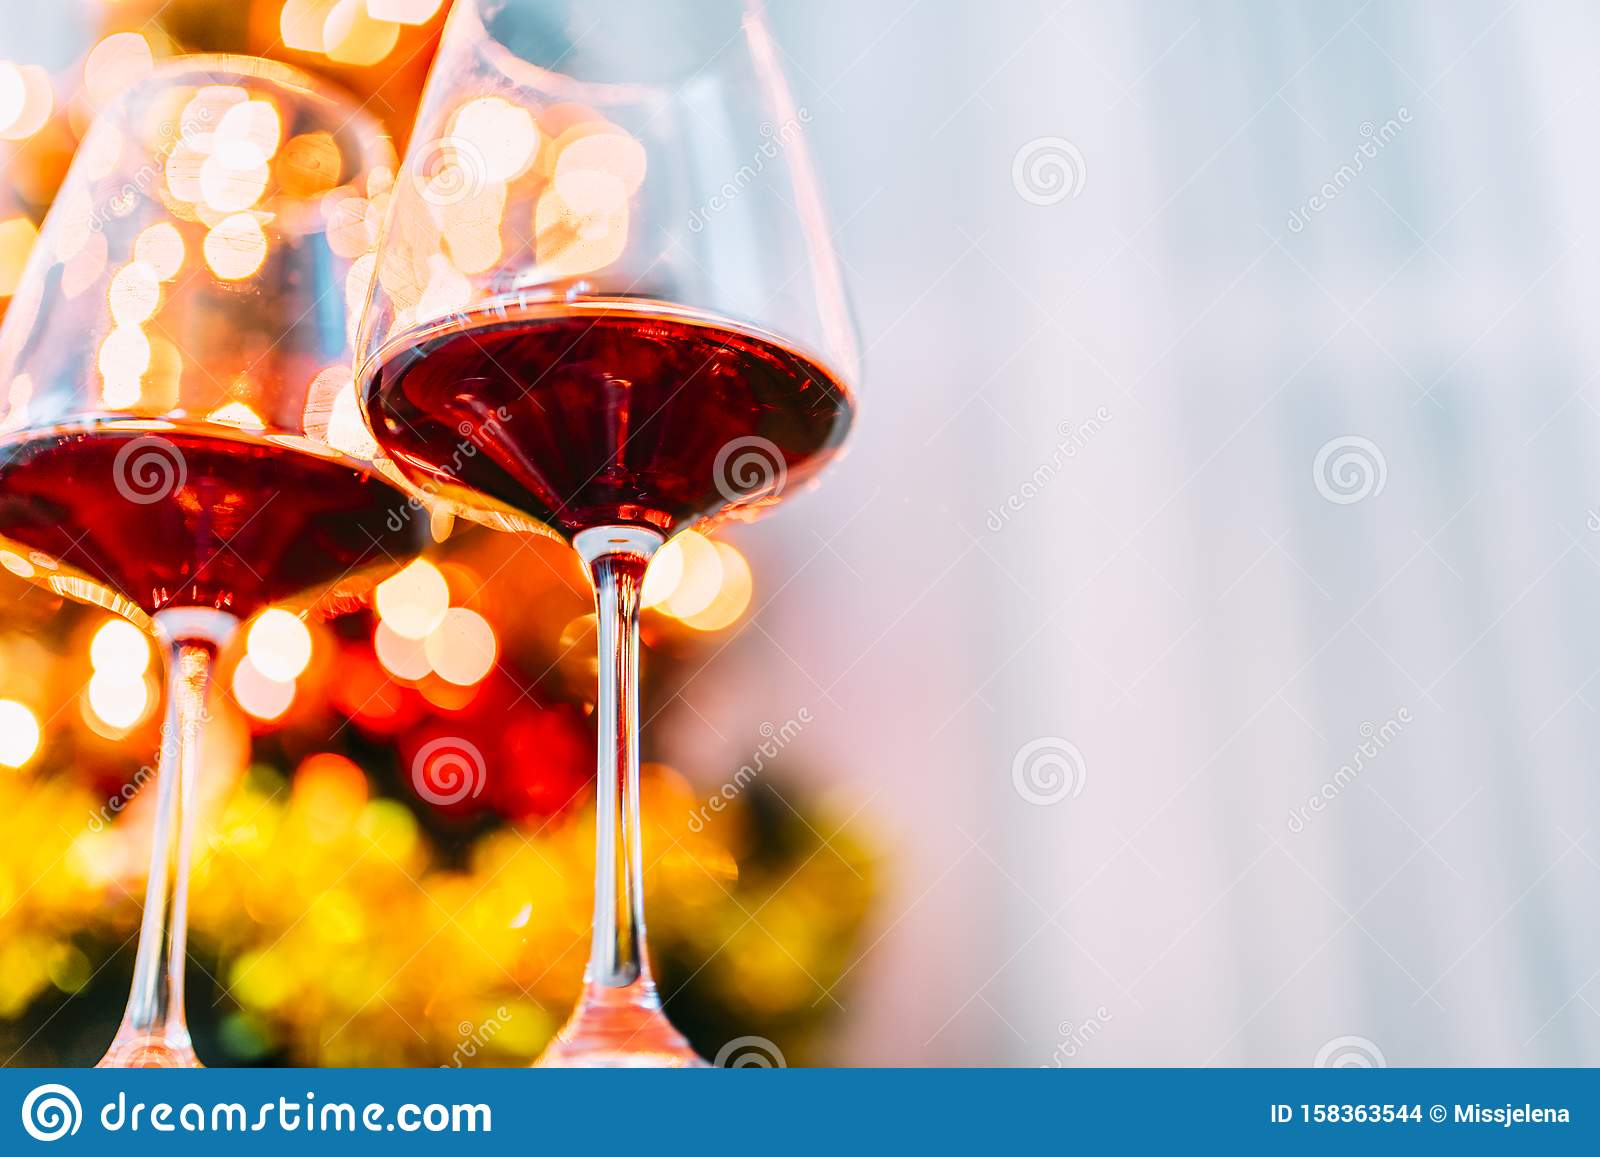 Two glass of red wine in front of christmas tree lights bokeh. New year eve and xmas celebration party